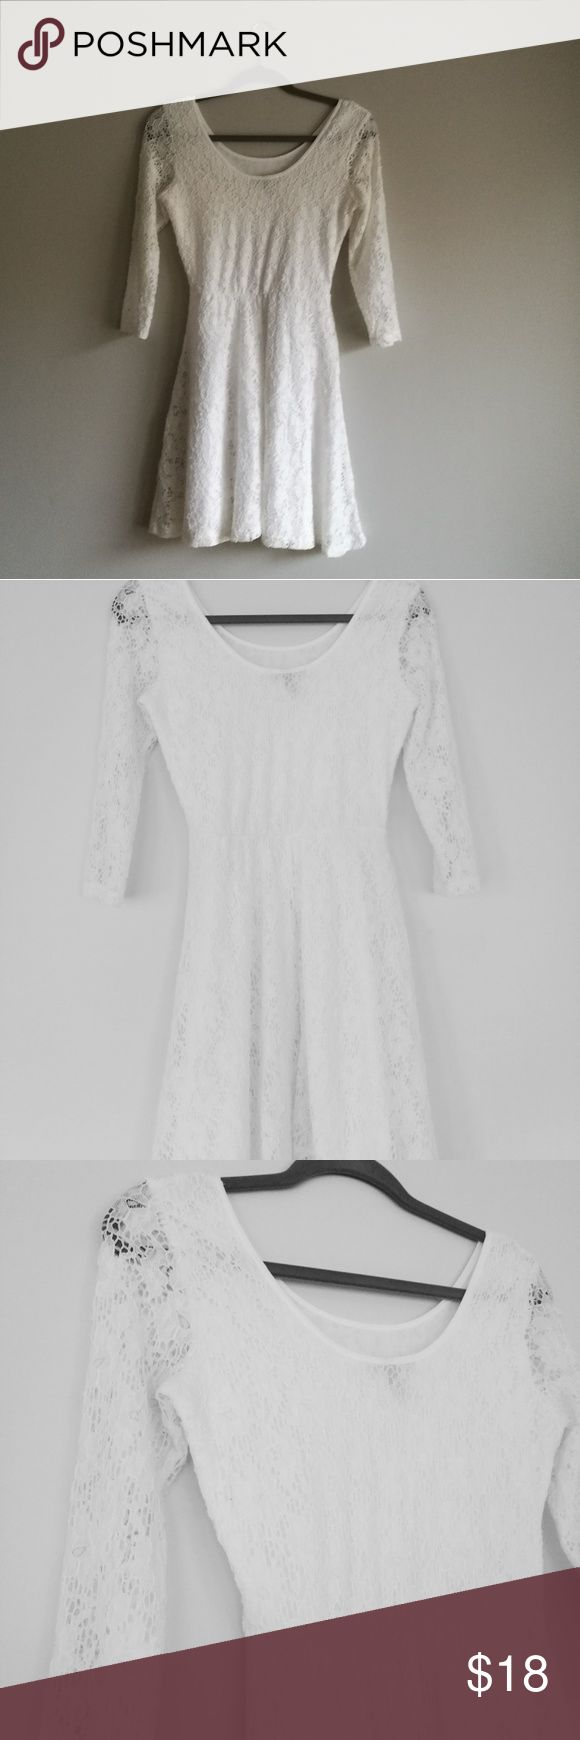 Juniors White lace skater dress size S Perfect dressy or casual wear.  Juniors skater dress, scoop neck and soft in white lace.  Lace:90% nylon 10% spandex Lining: 100% polyester Derek Heart Dresses Midi